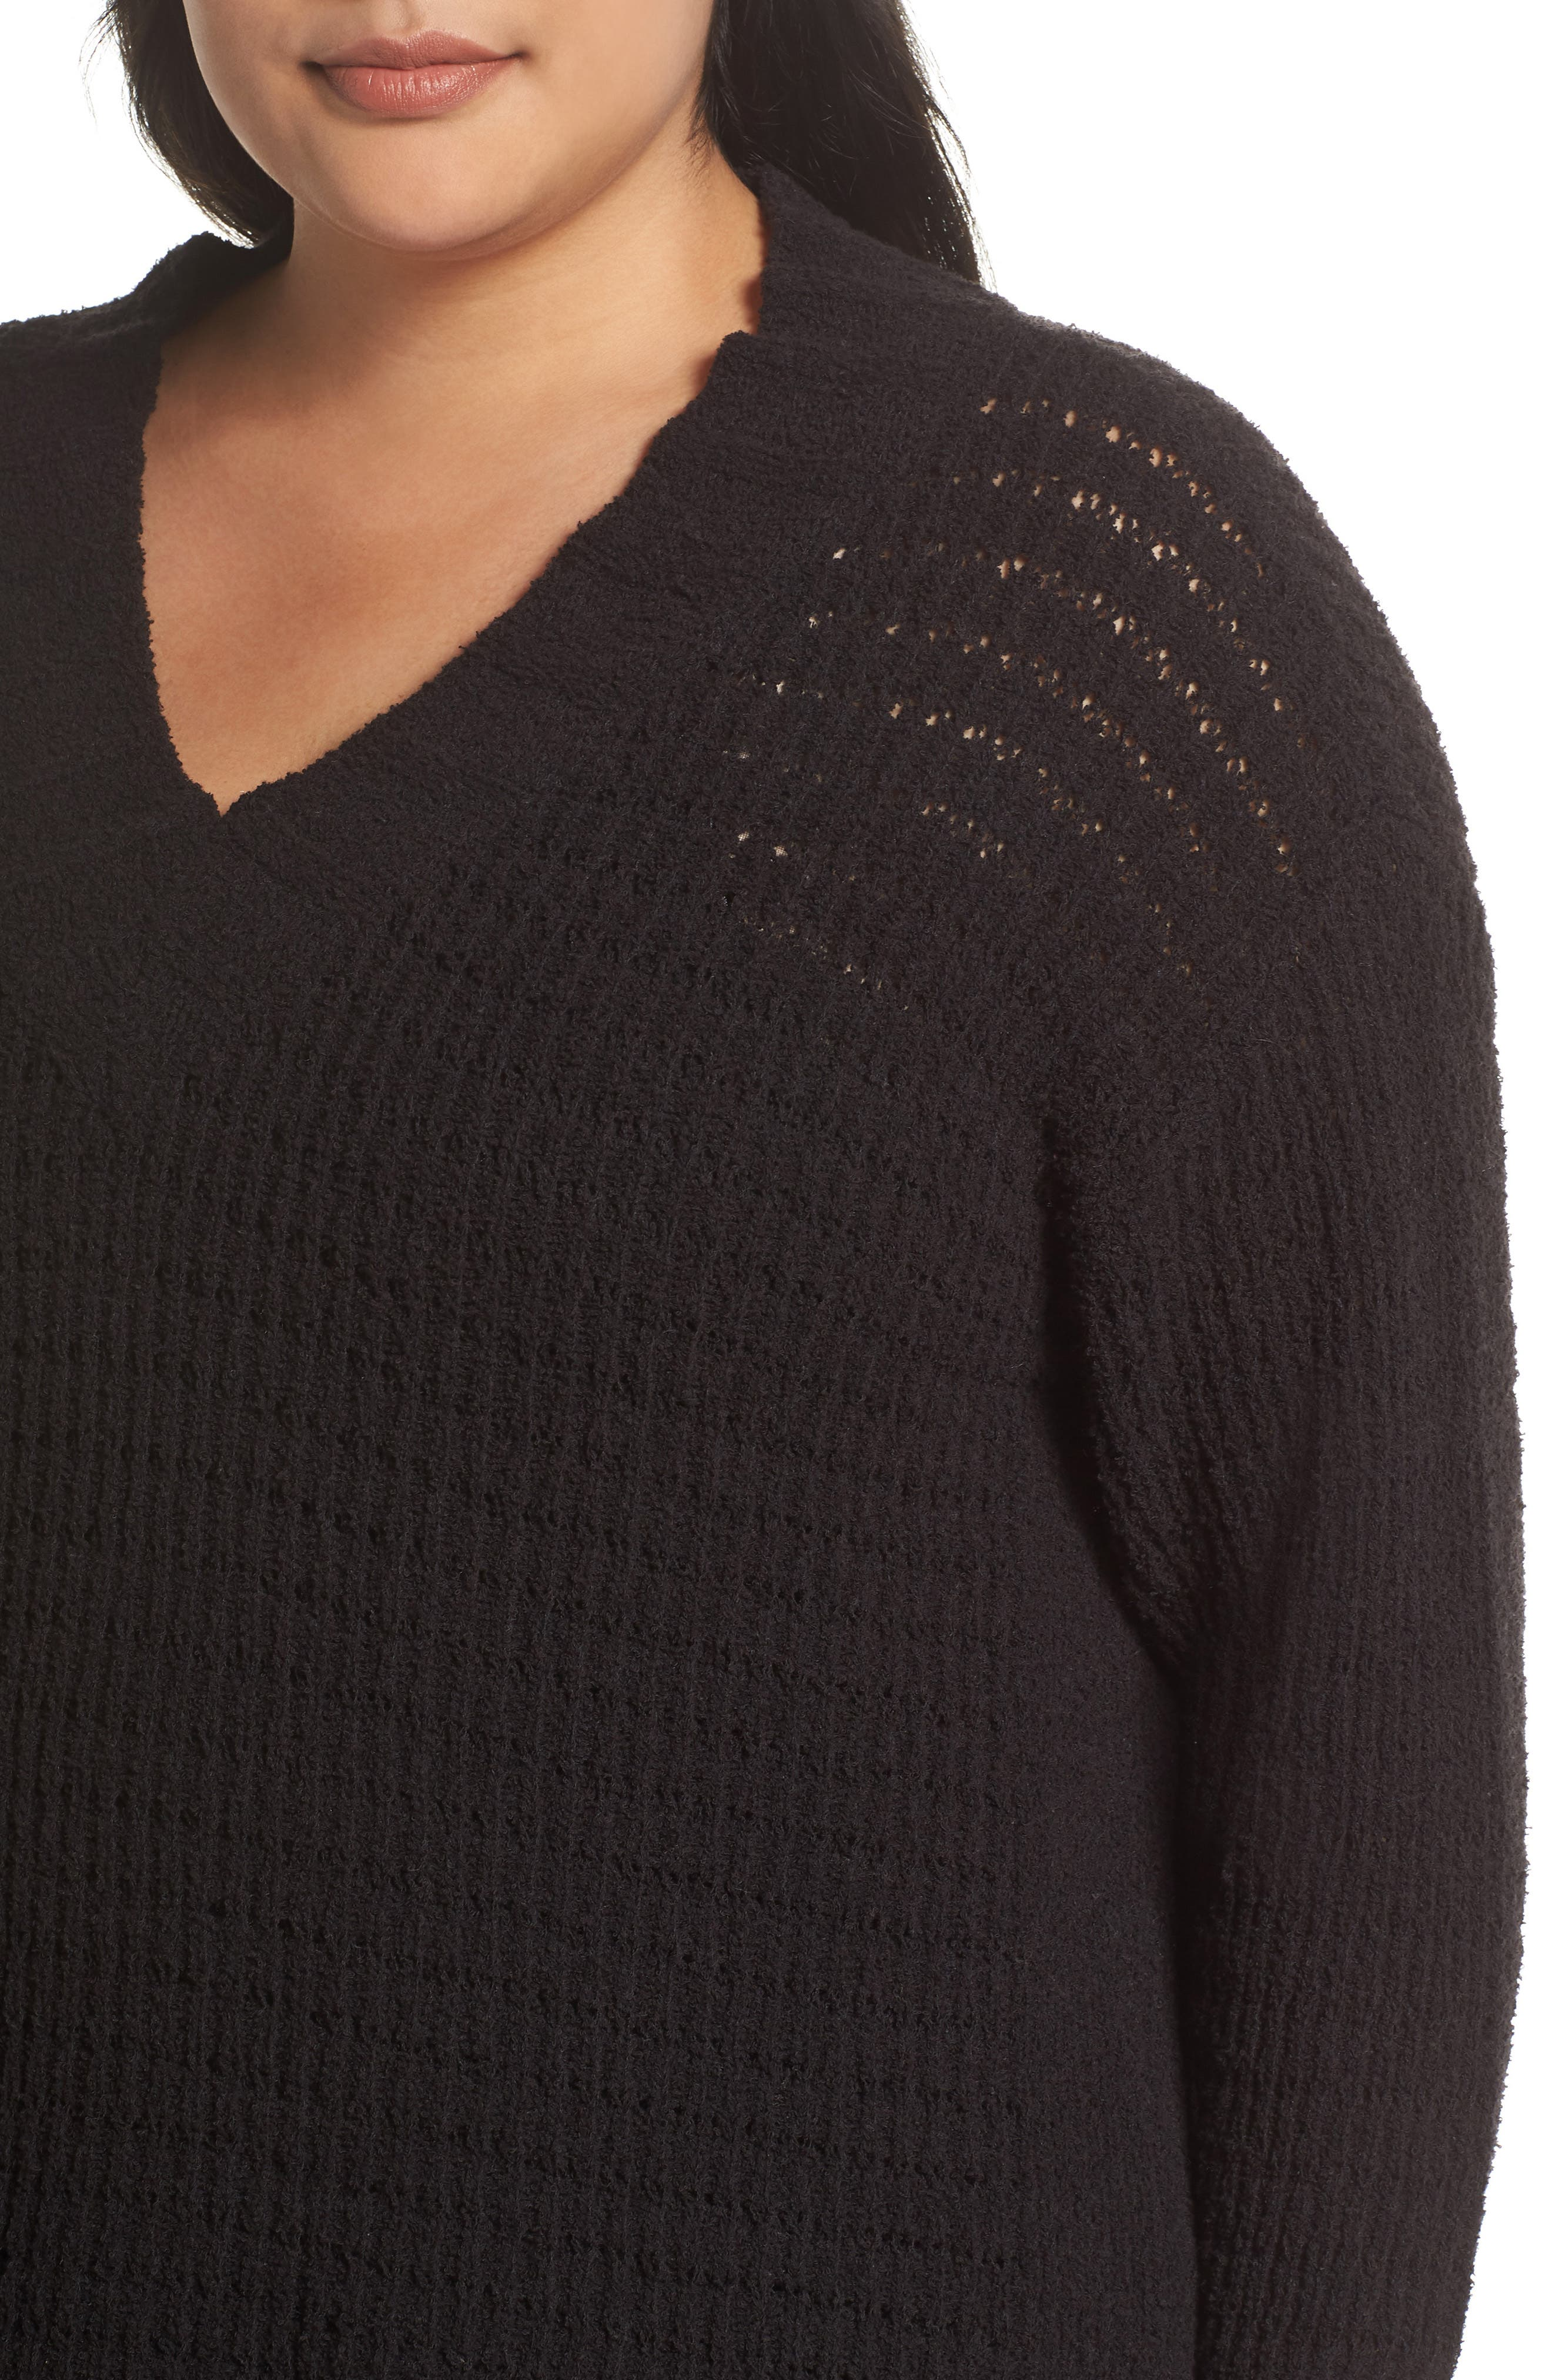 CASLON<SUP>®</SUP>, Tuck Stitch Sweater, Alternate thumbnail 4, color, BLACK